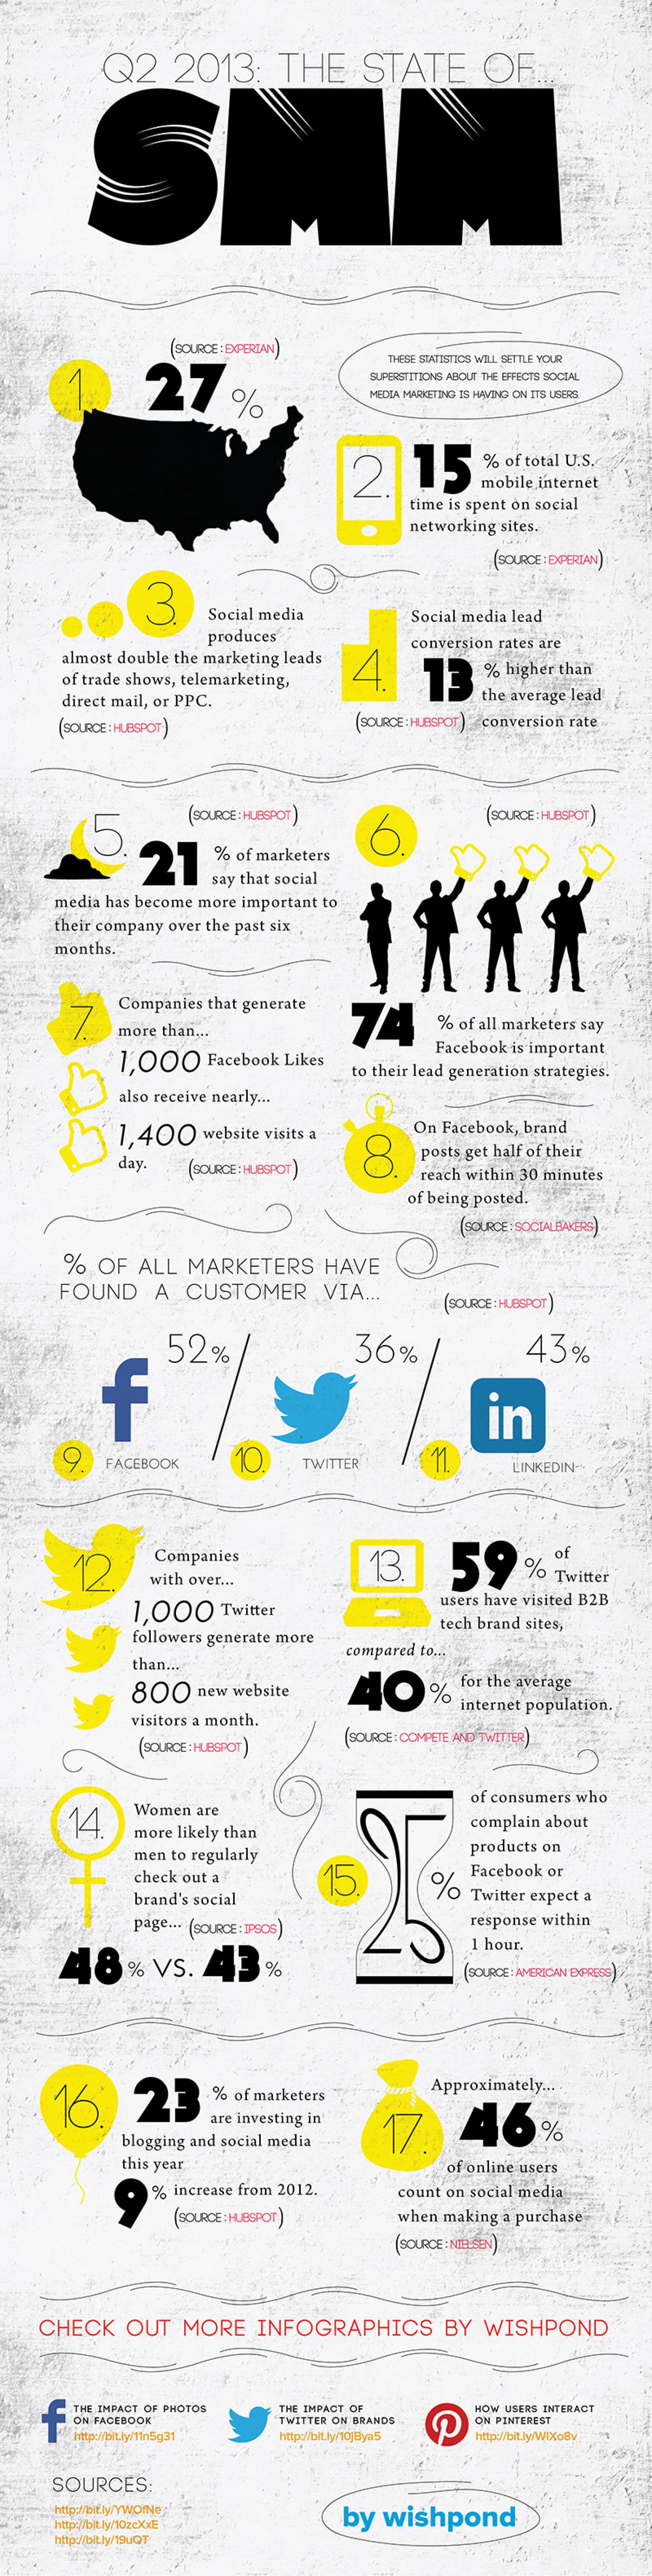 Q2 2013: The State of Social Media Marketing Infographic